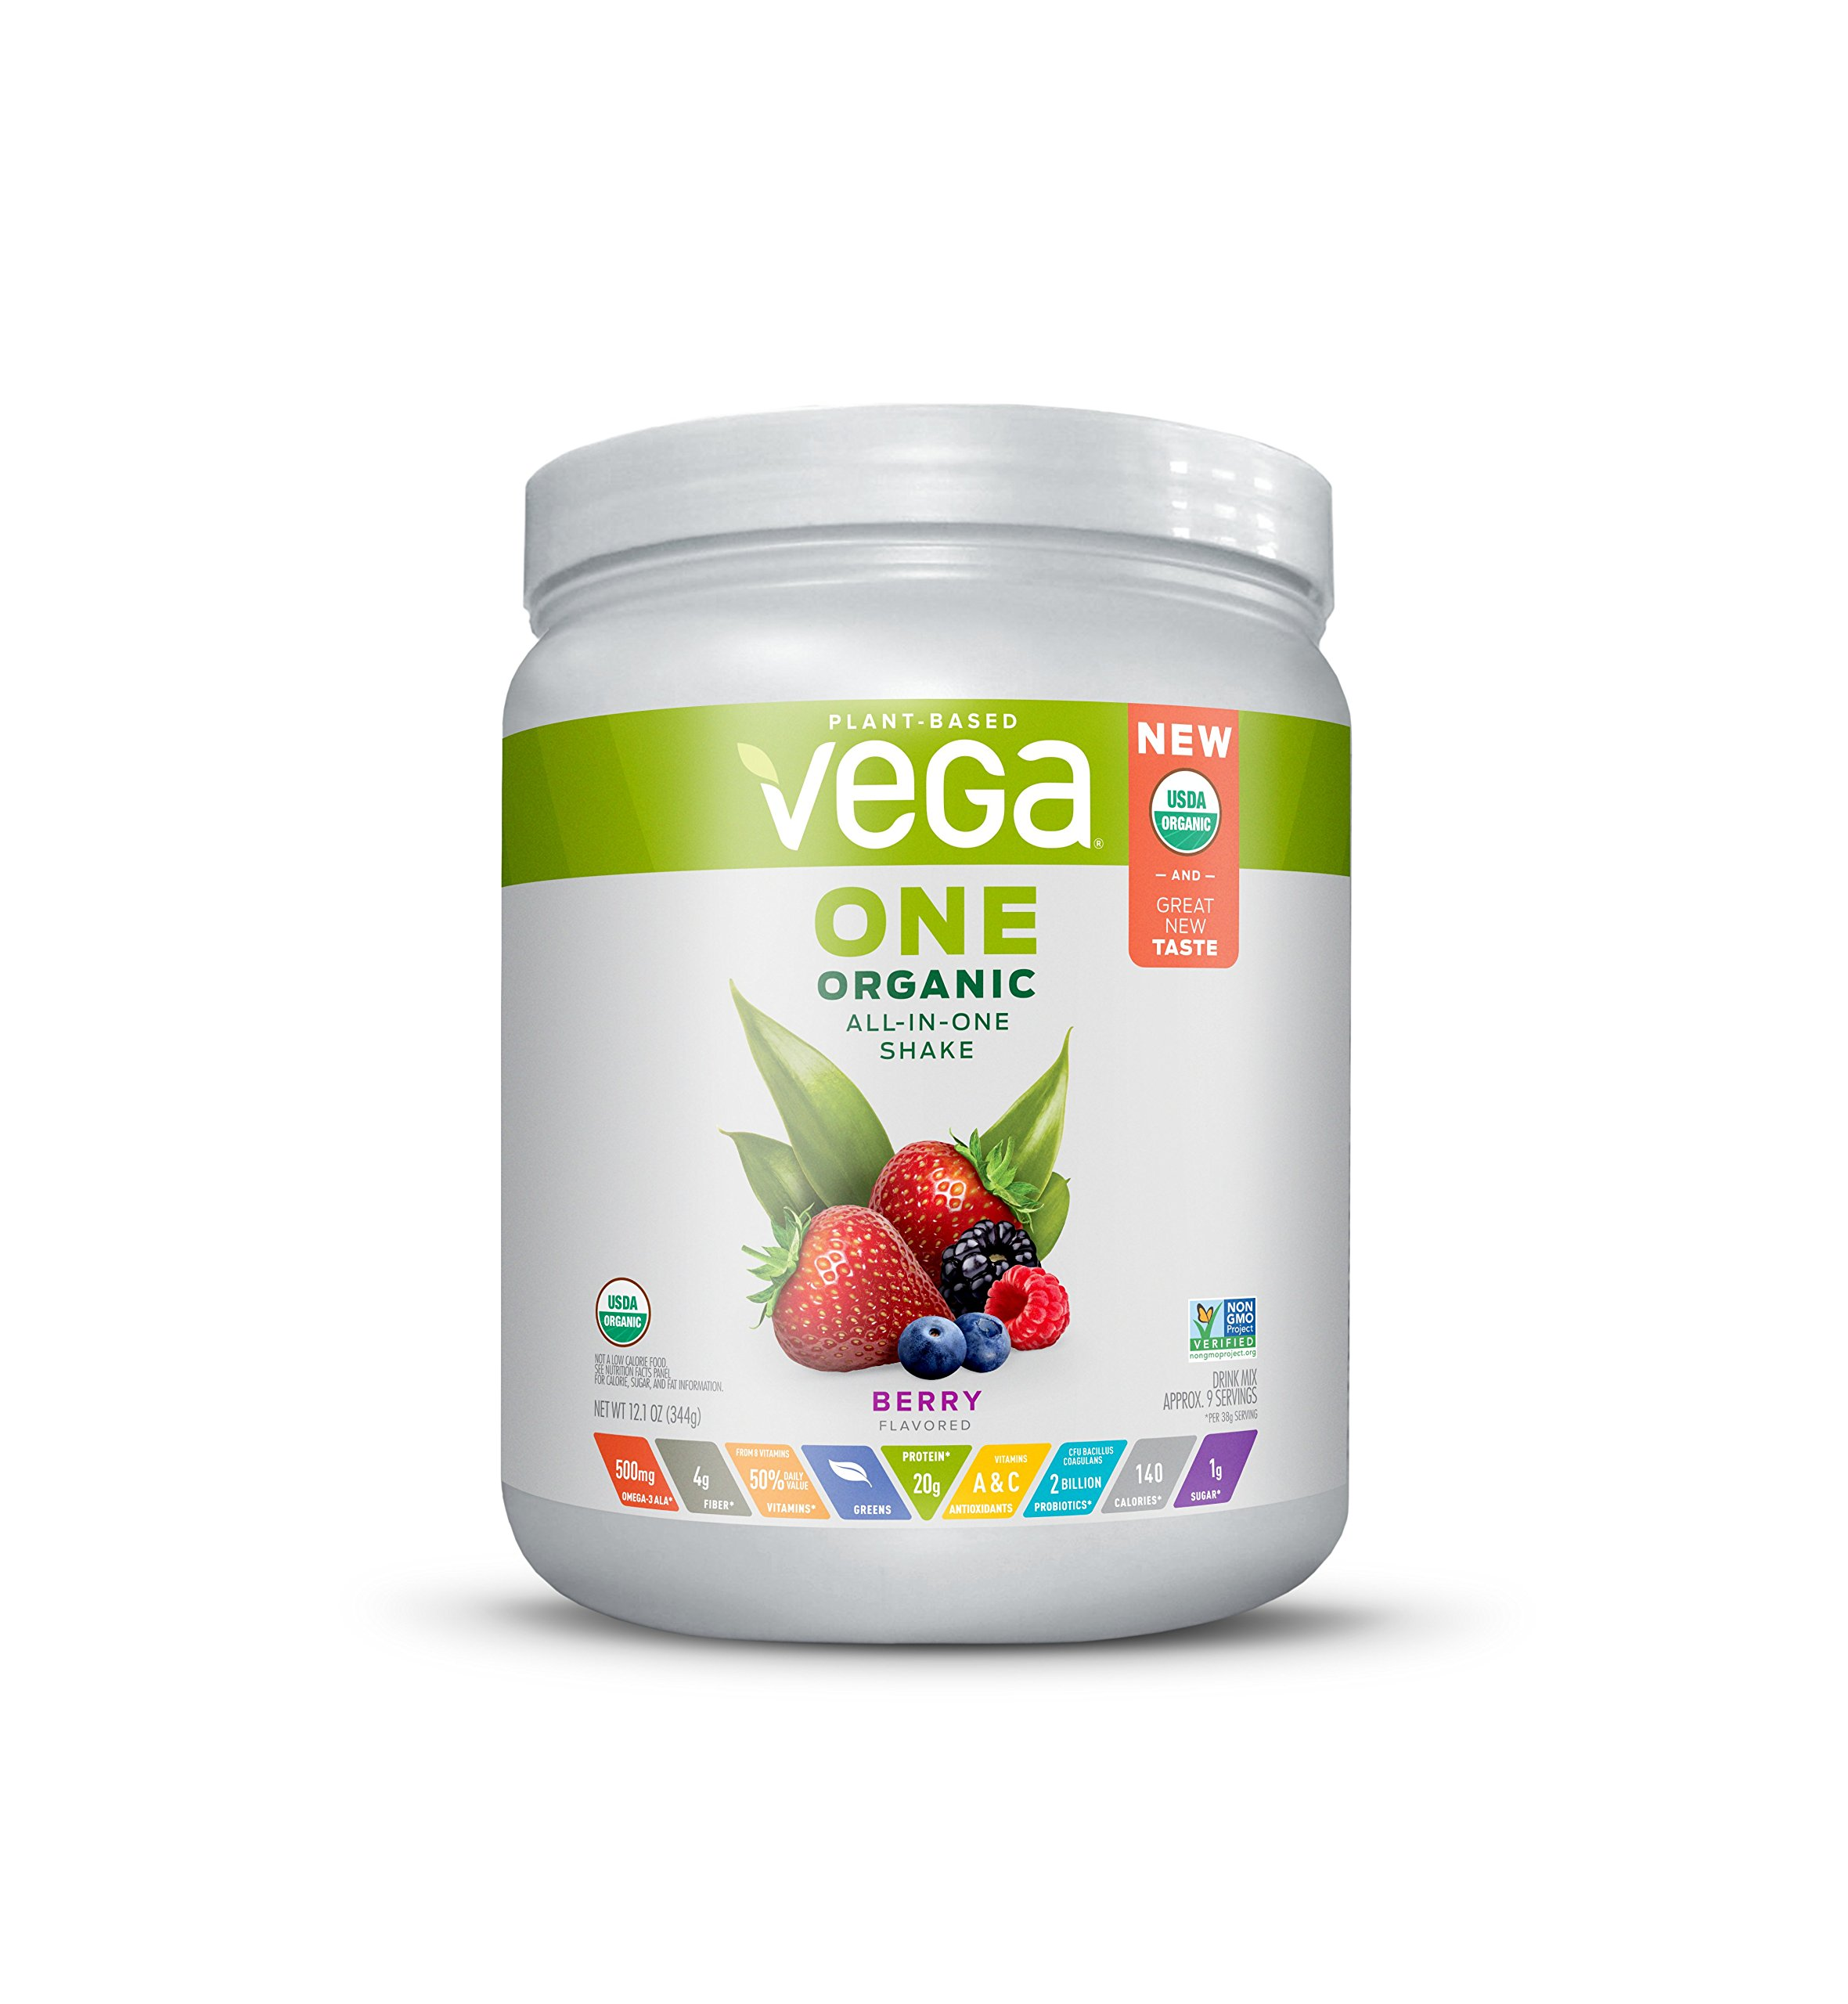 Vega One Organic Plant Protein Powder